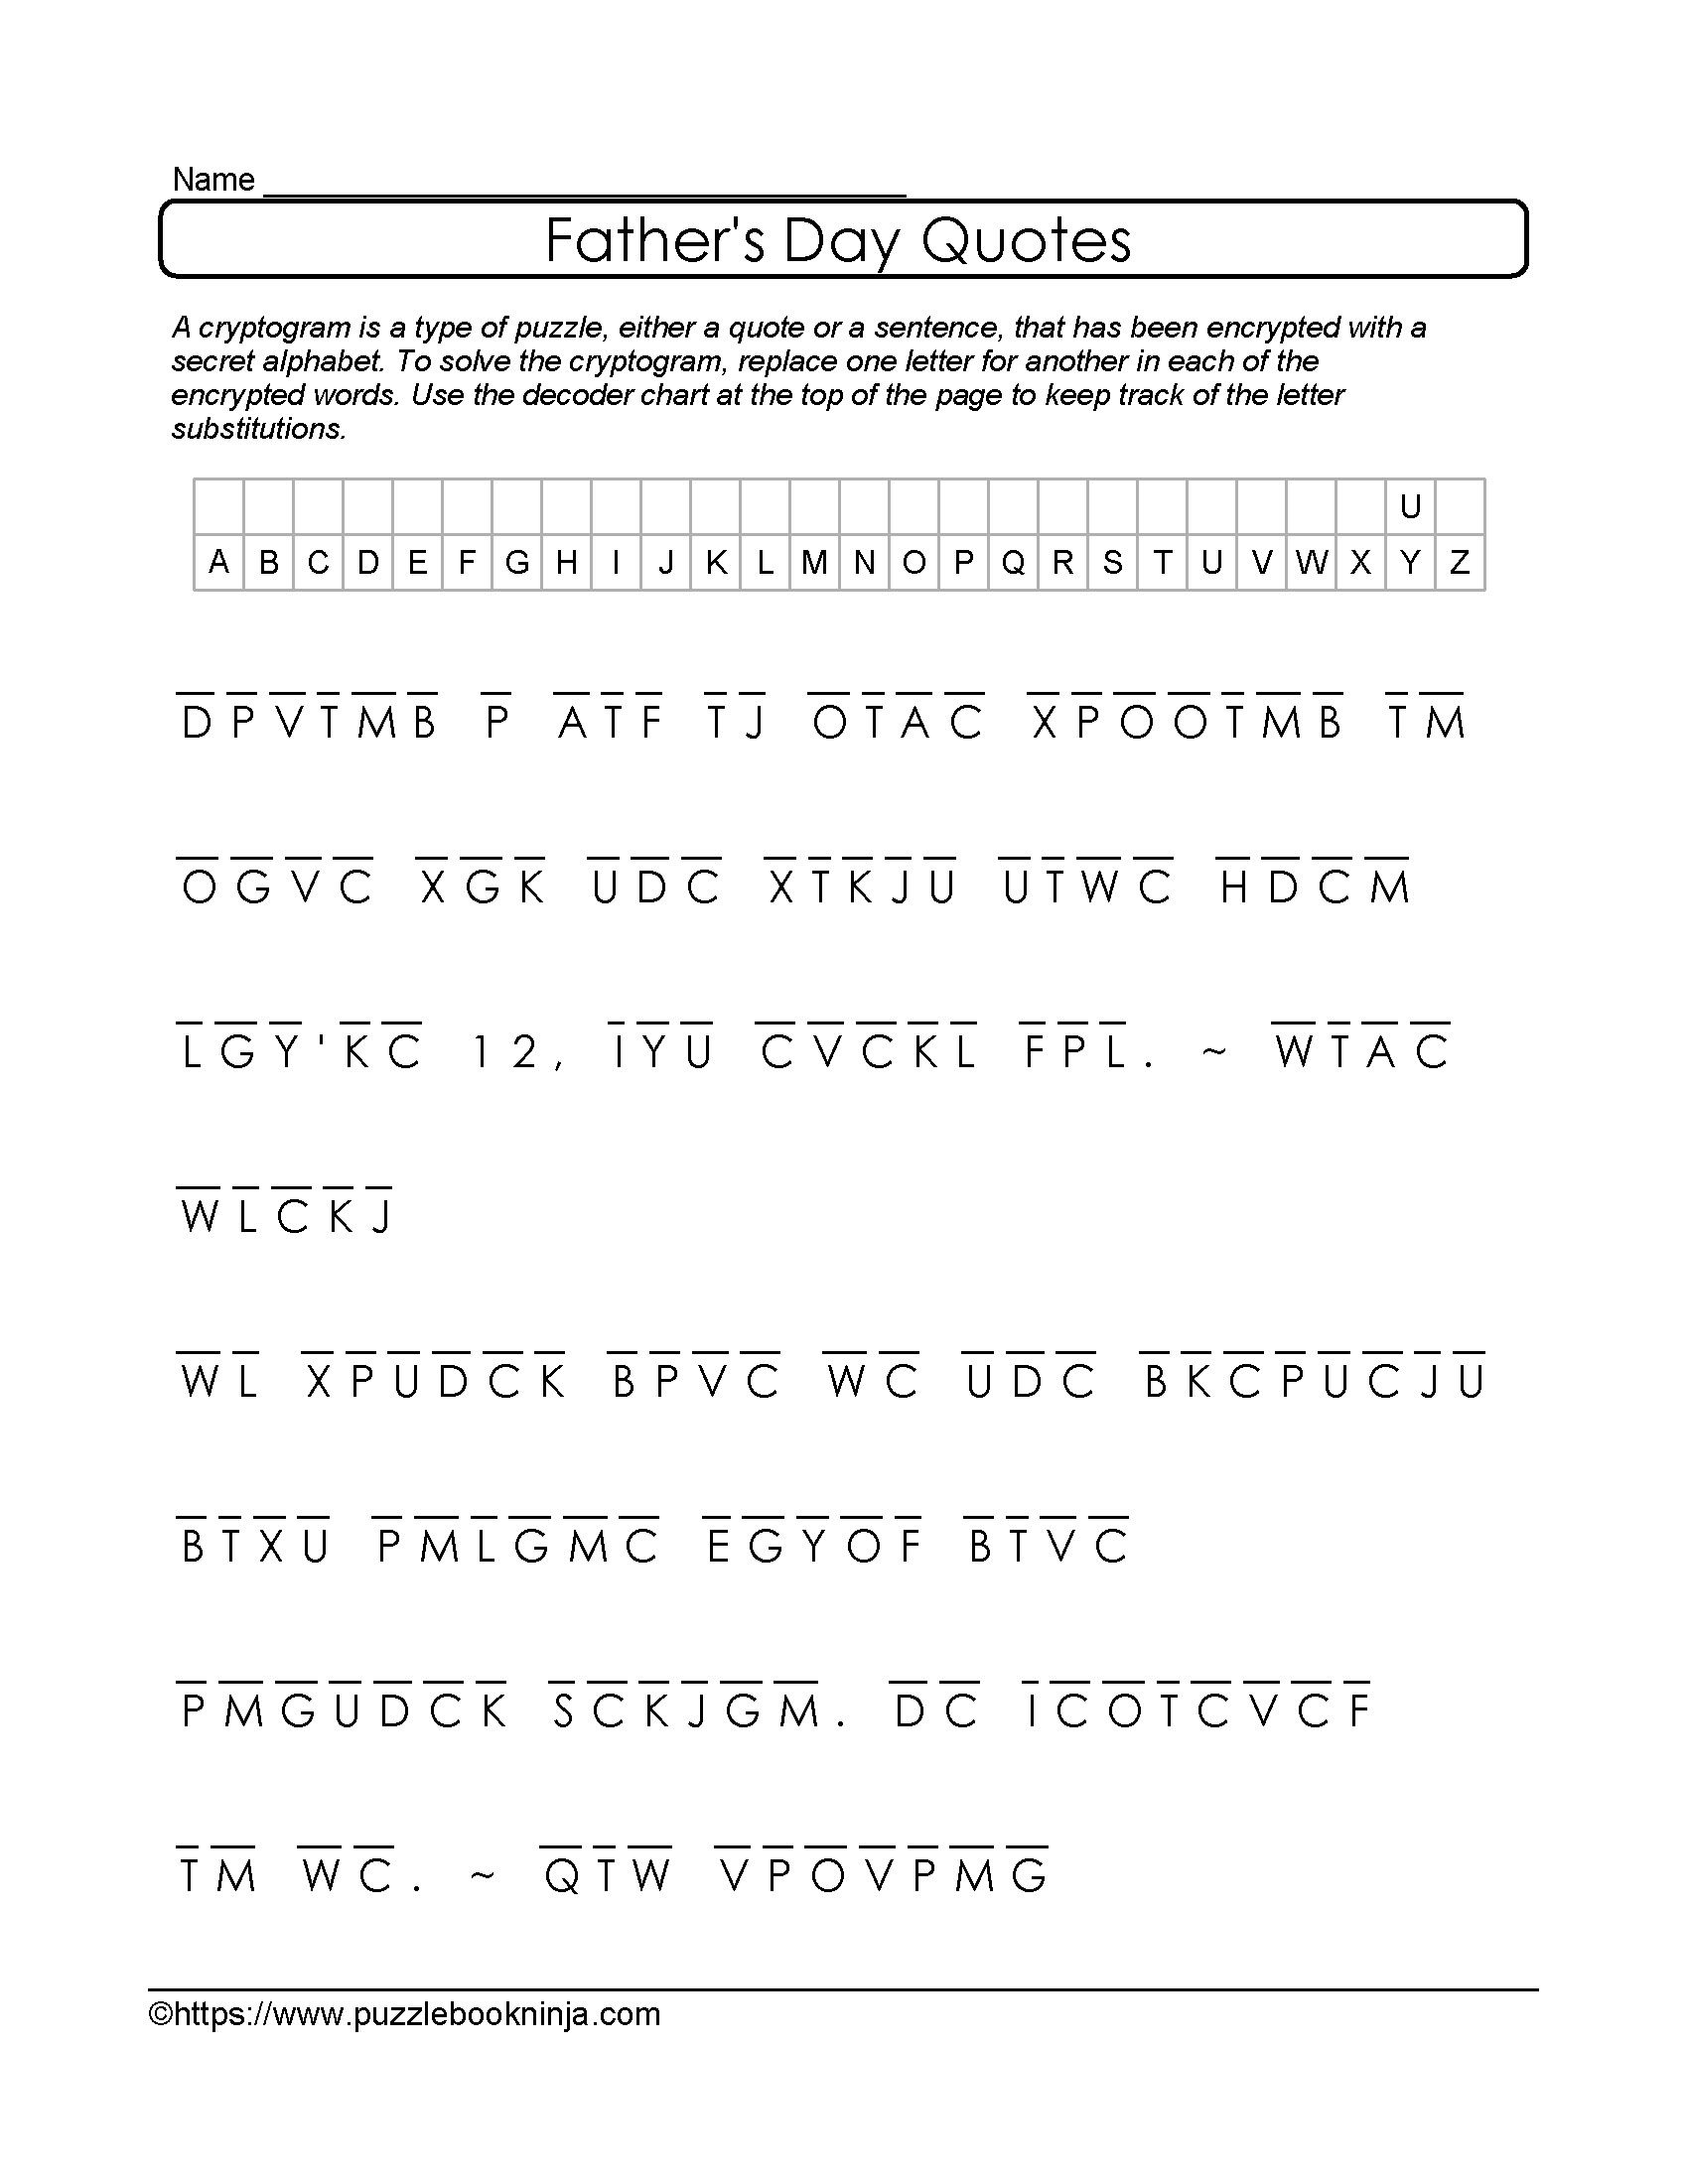 Free And Printable Father's Day Cryptogram. Quotes About Dad - Free Printable Cryptograms Pdf